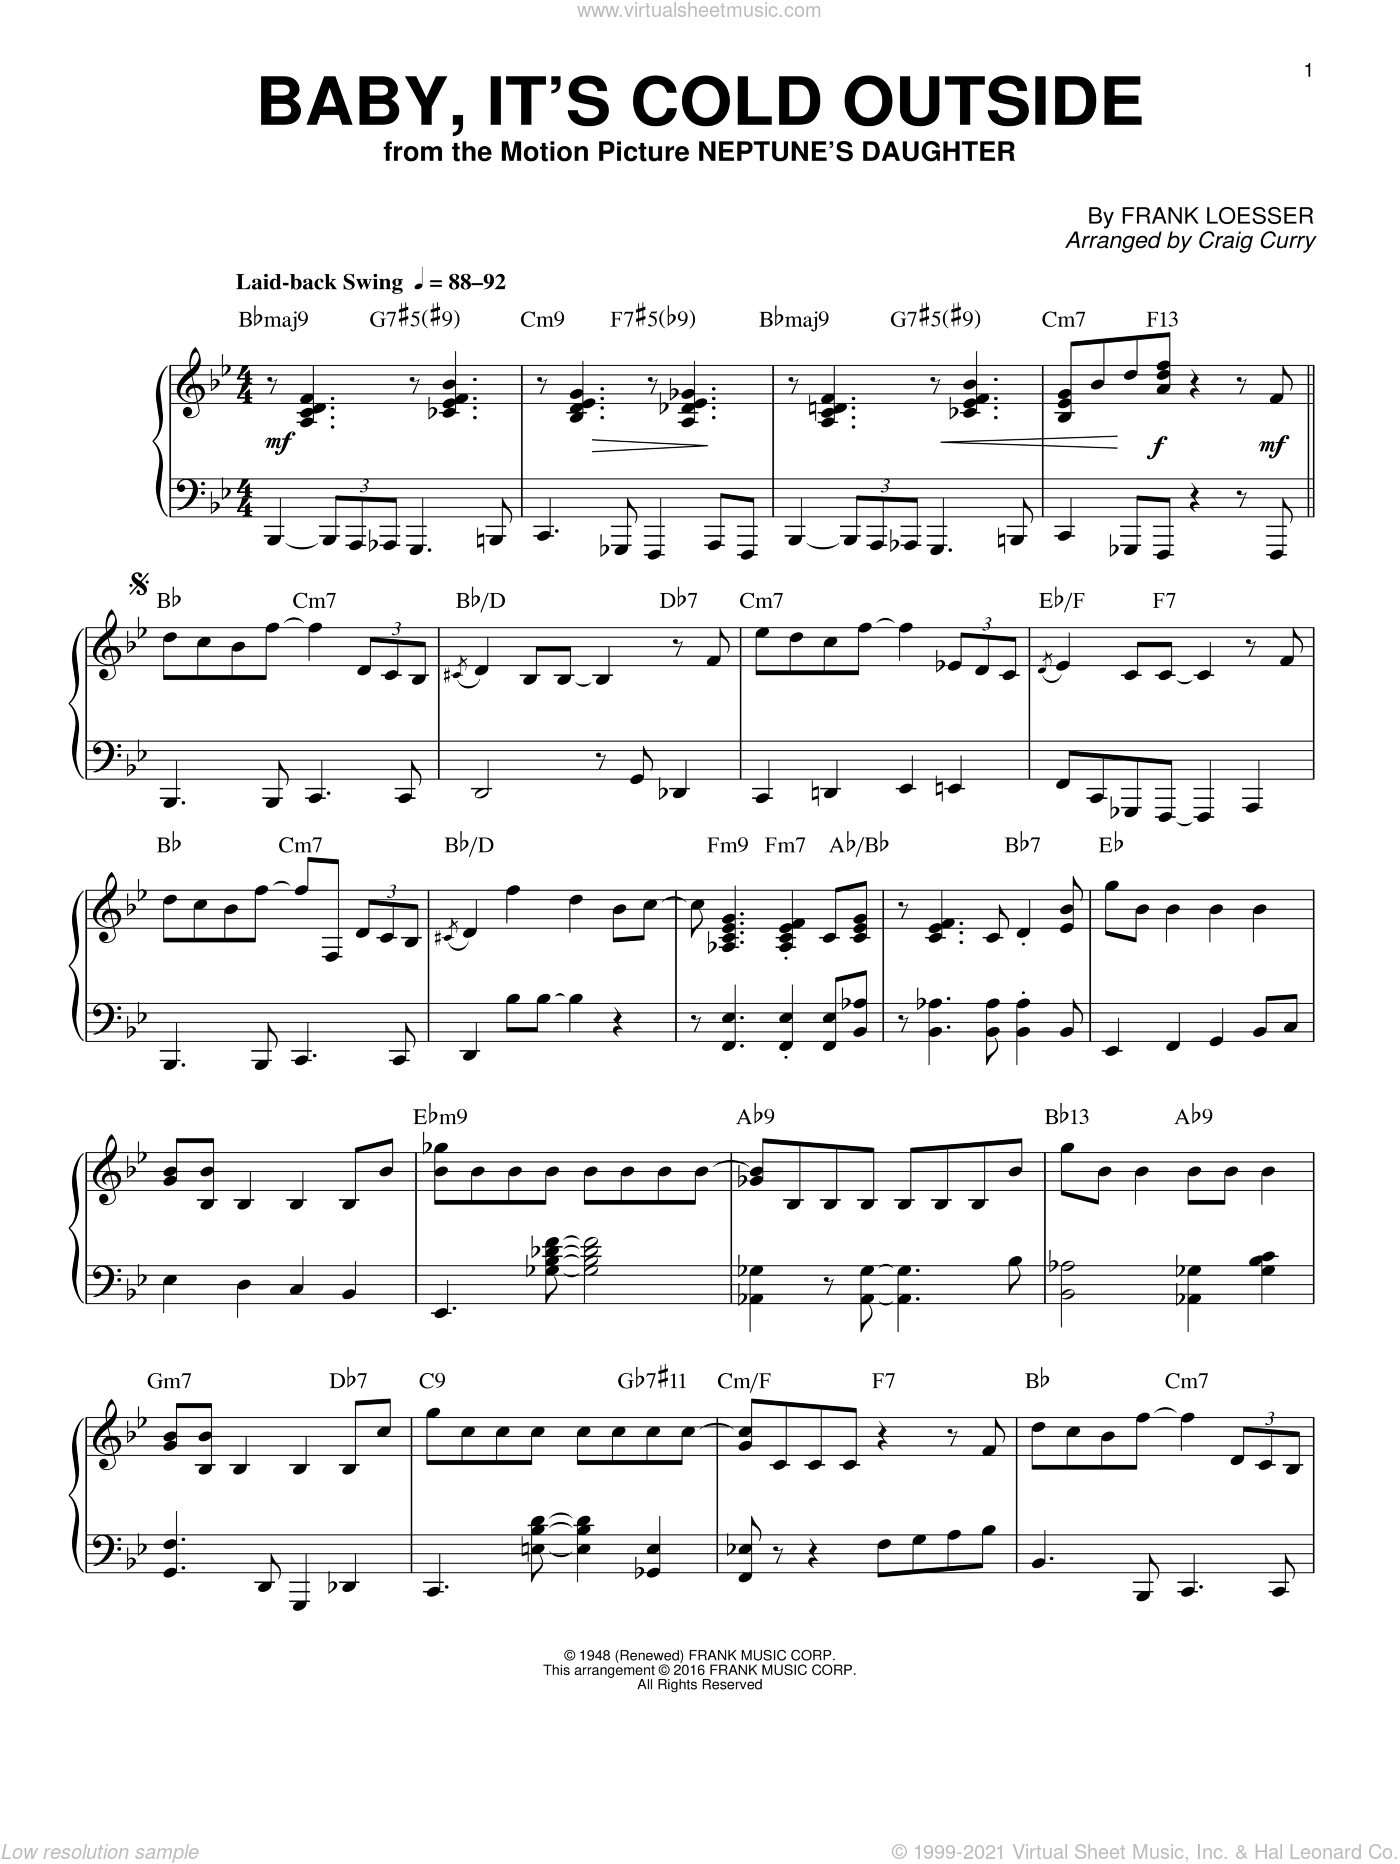 Baby, It's Cold Outside sheet music for piano solo by Frank Loesser, Craig Curry and She & Him, intermediate skill level